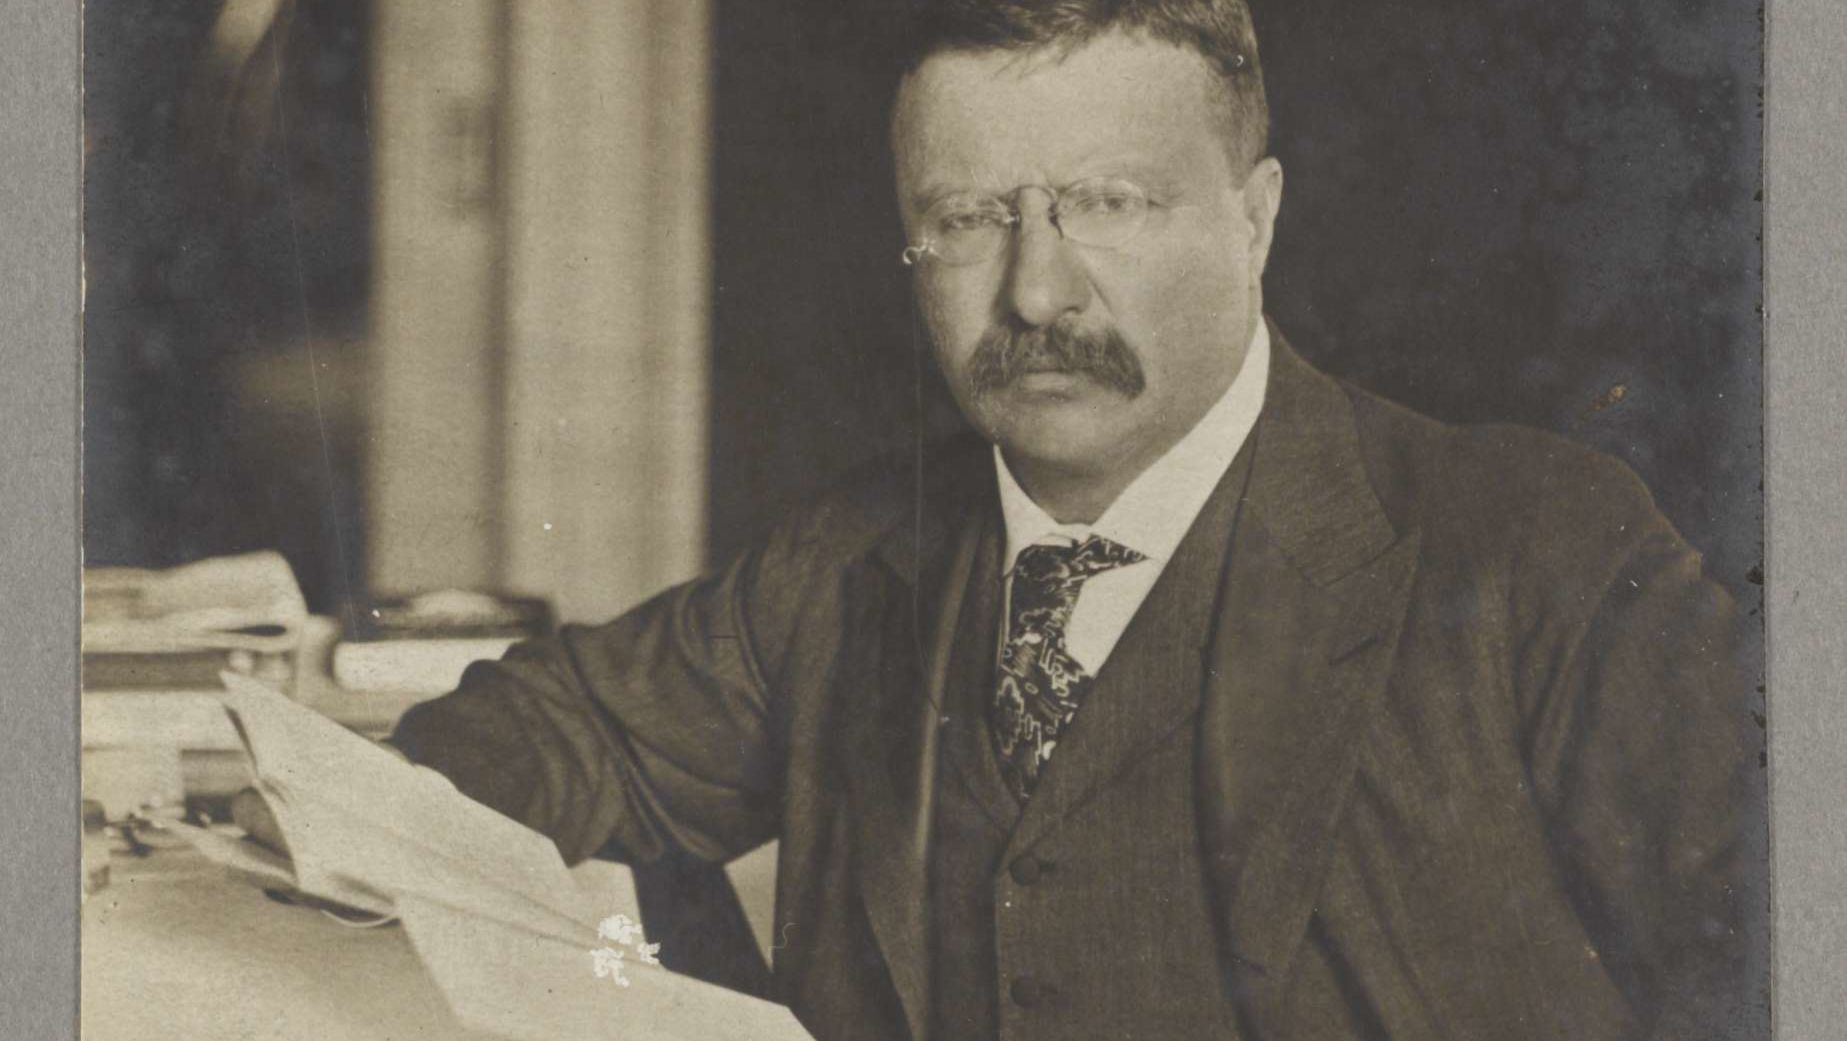 The Library of Congress Needs Help Transcribing More Than 20,000 Letters Written to Teddy Roosevelt